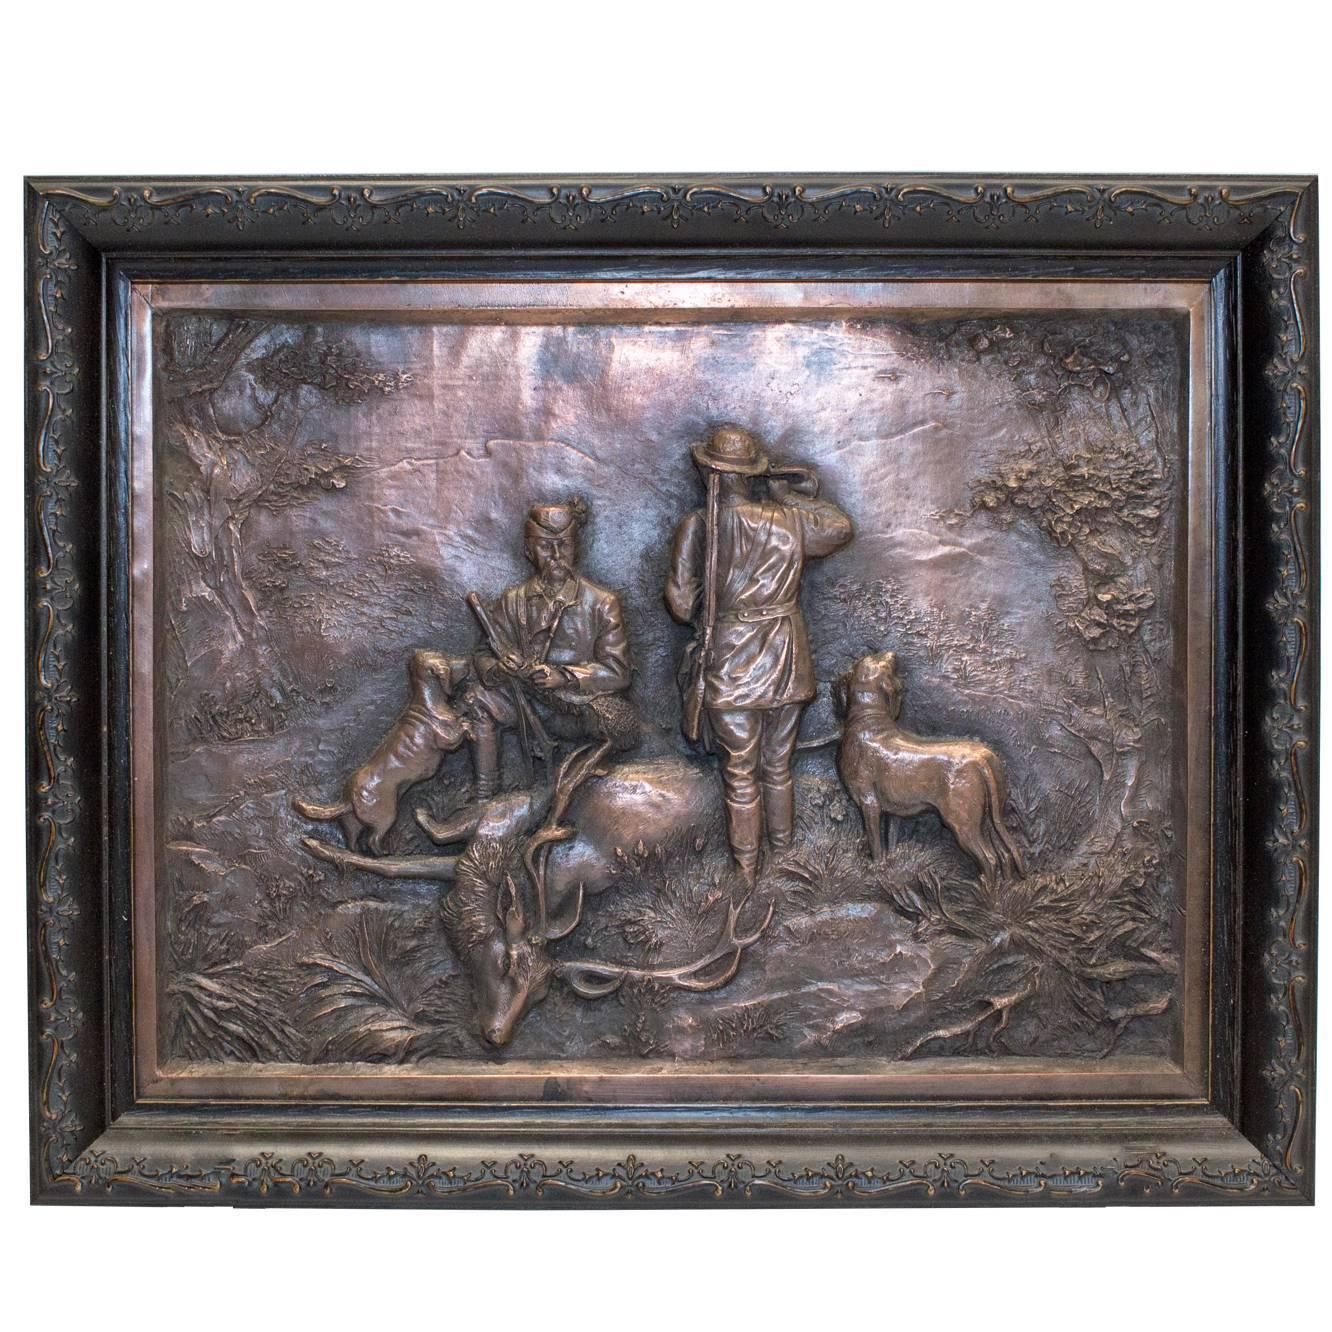 German copper jägermeister bas relief for sale at stdibs